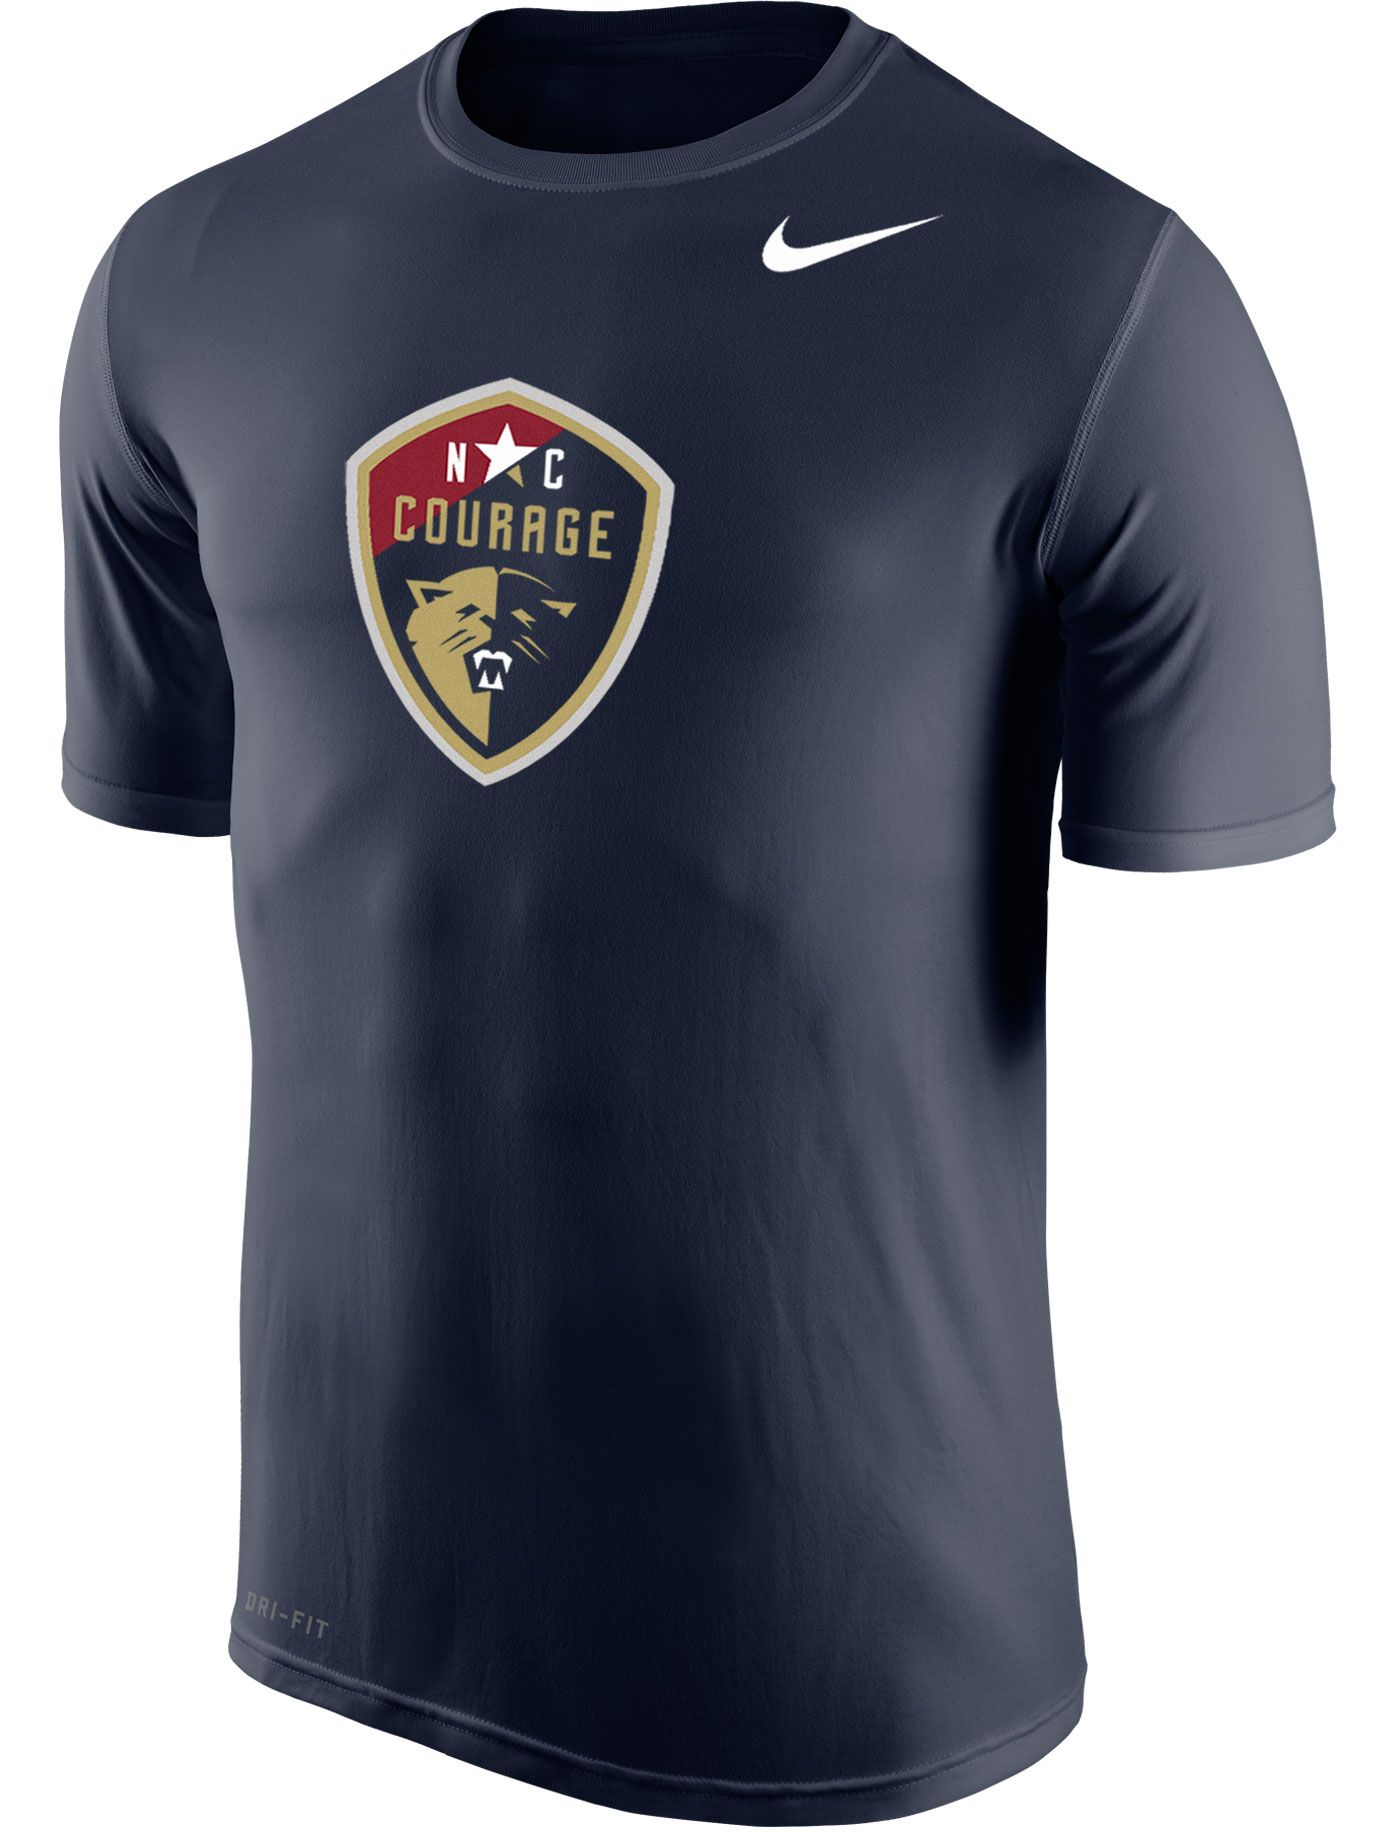 Nike Men's North Carolina Courage Primary Logo Navy Tri-Blend T-Shirt